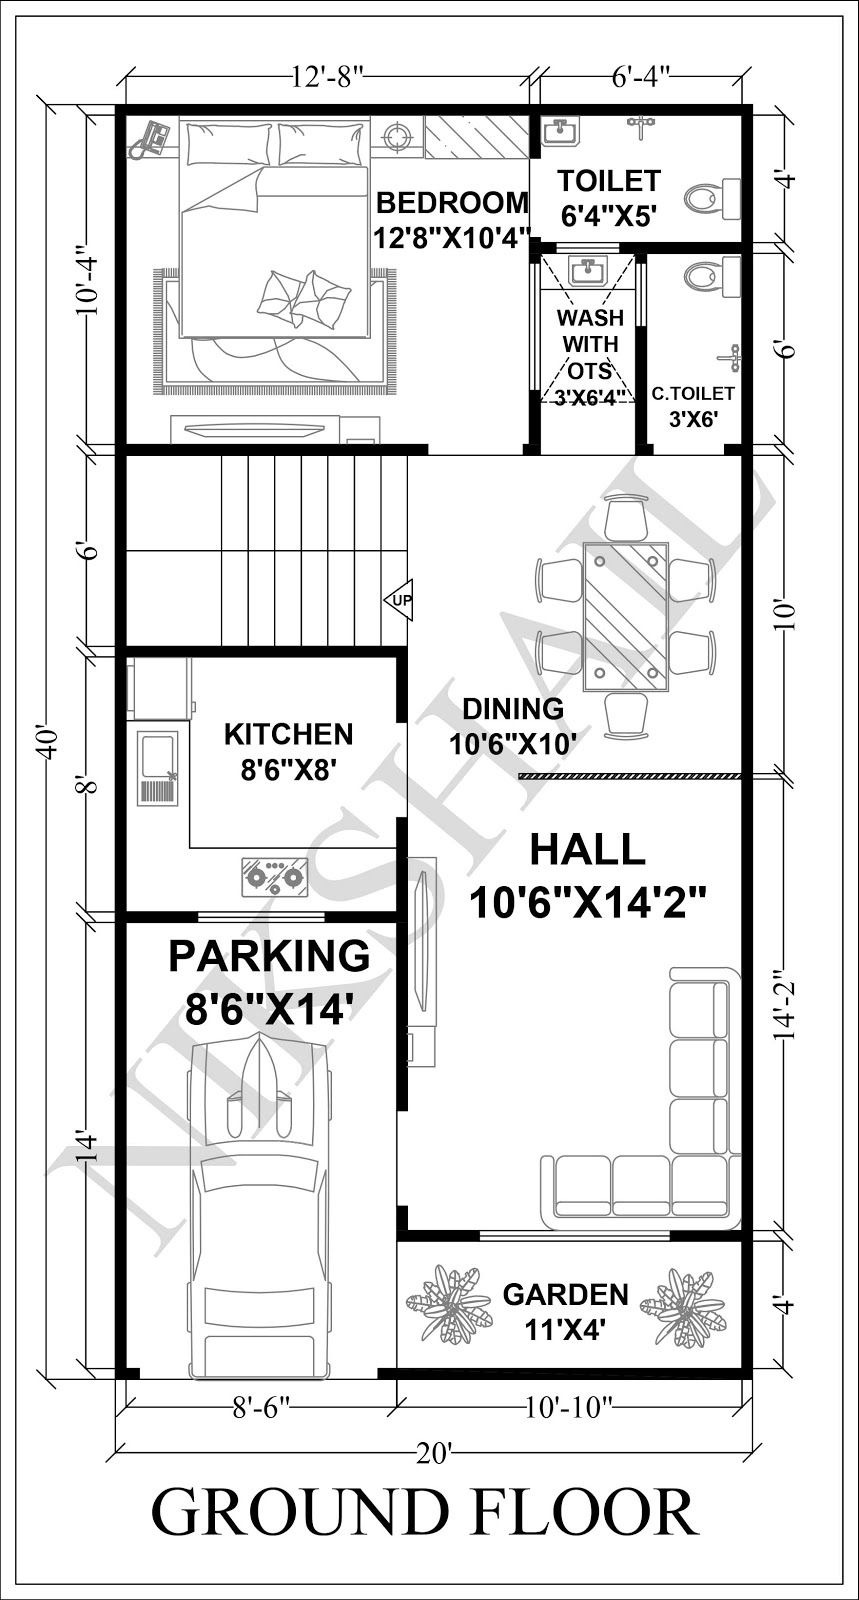 20x40 House Plan Car Parking With 3d Elevation By Nikshail 20x40 House Plans Narrow House Plans 20x30 House Plans